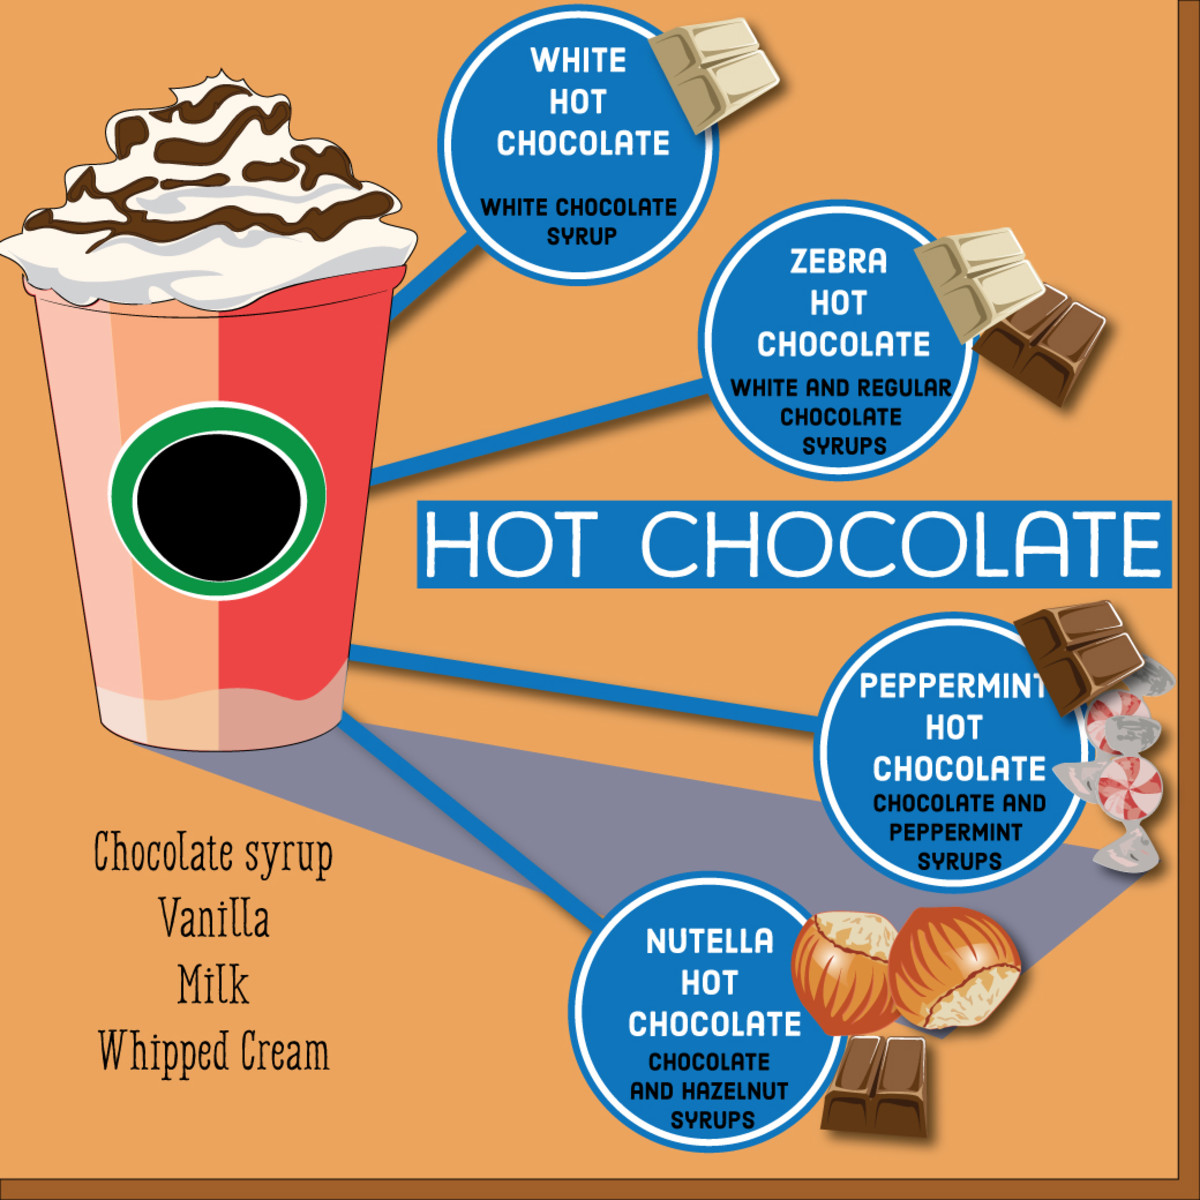 The secret menu for hot chocolates.